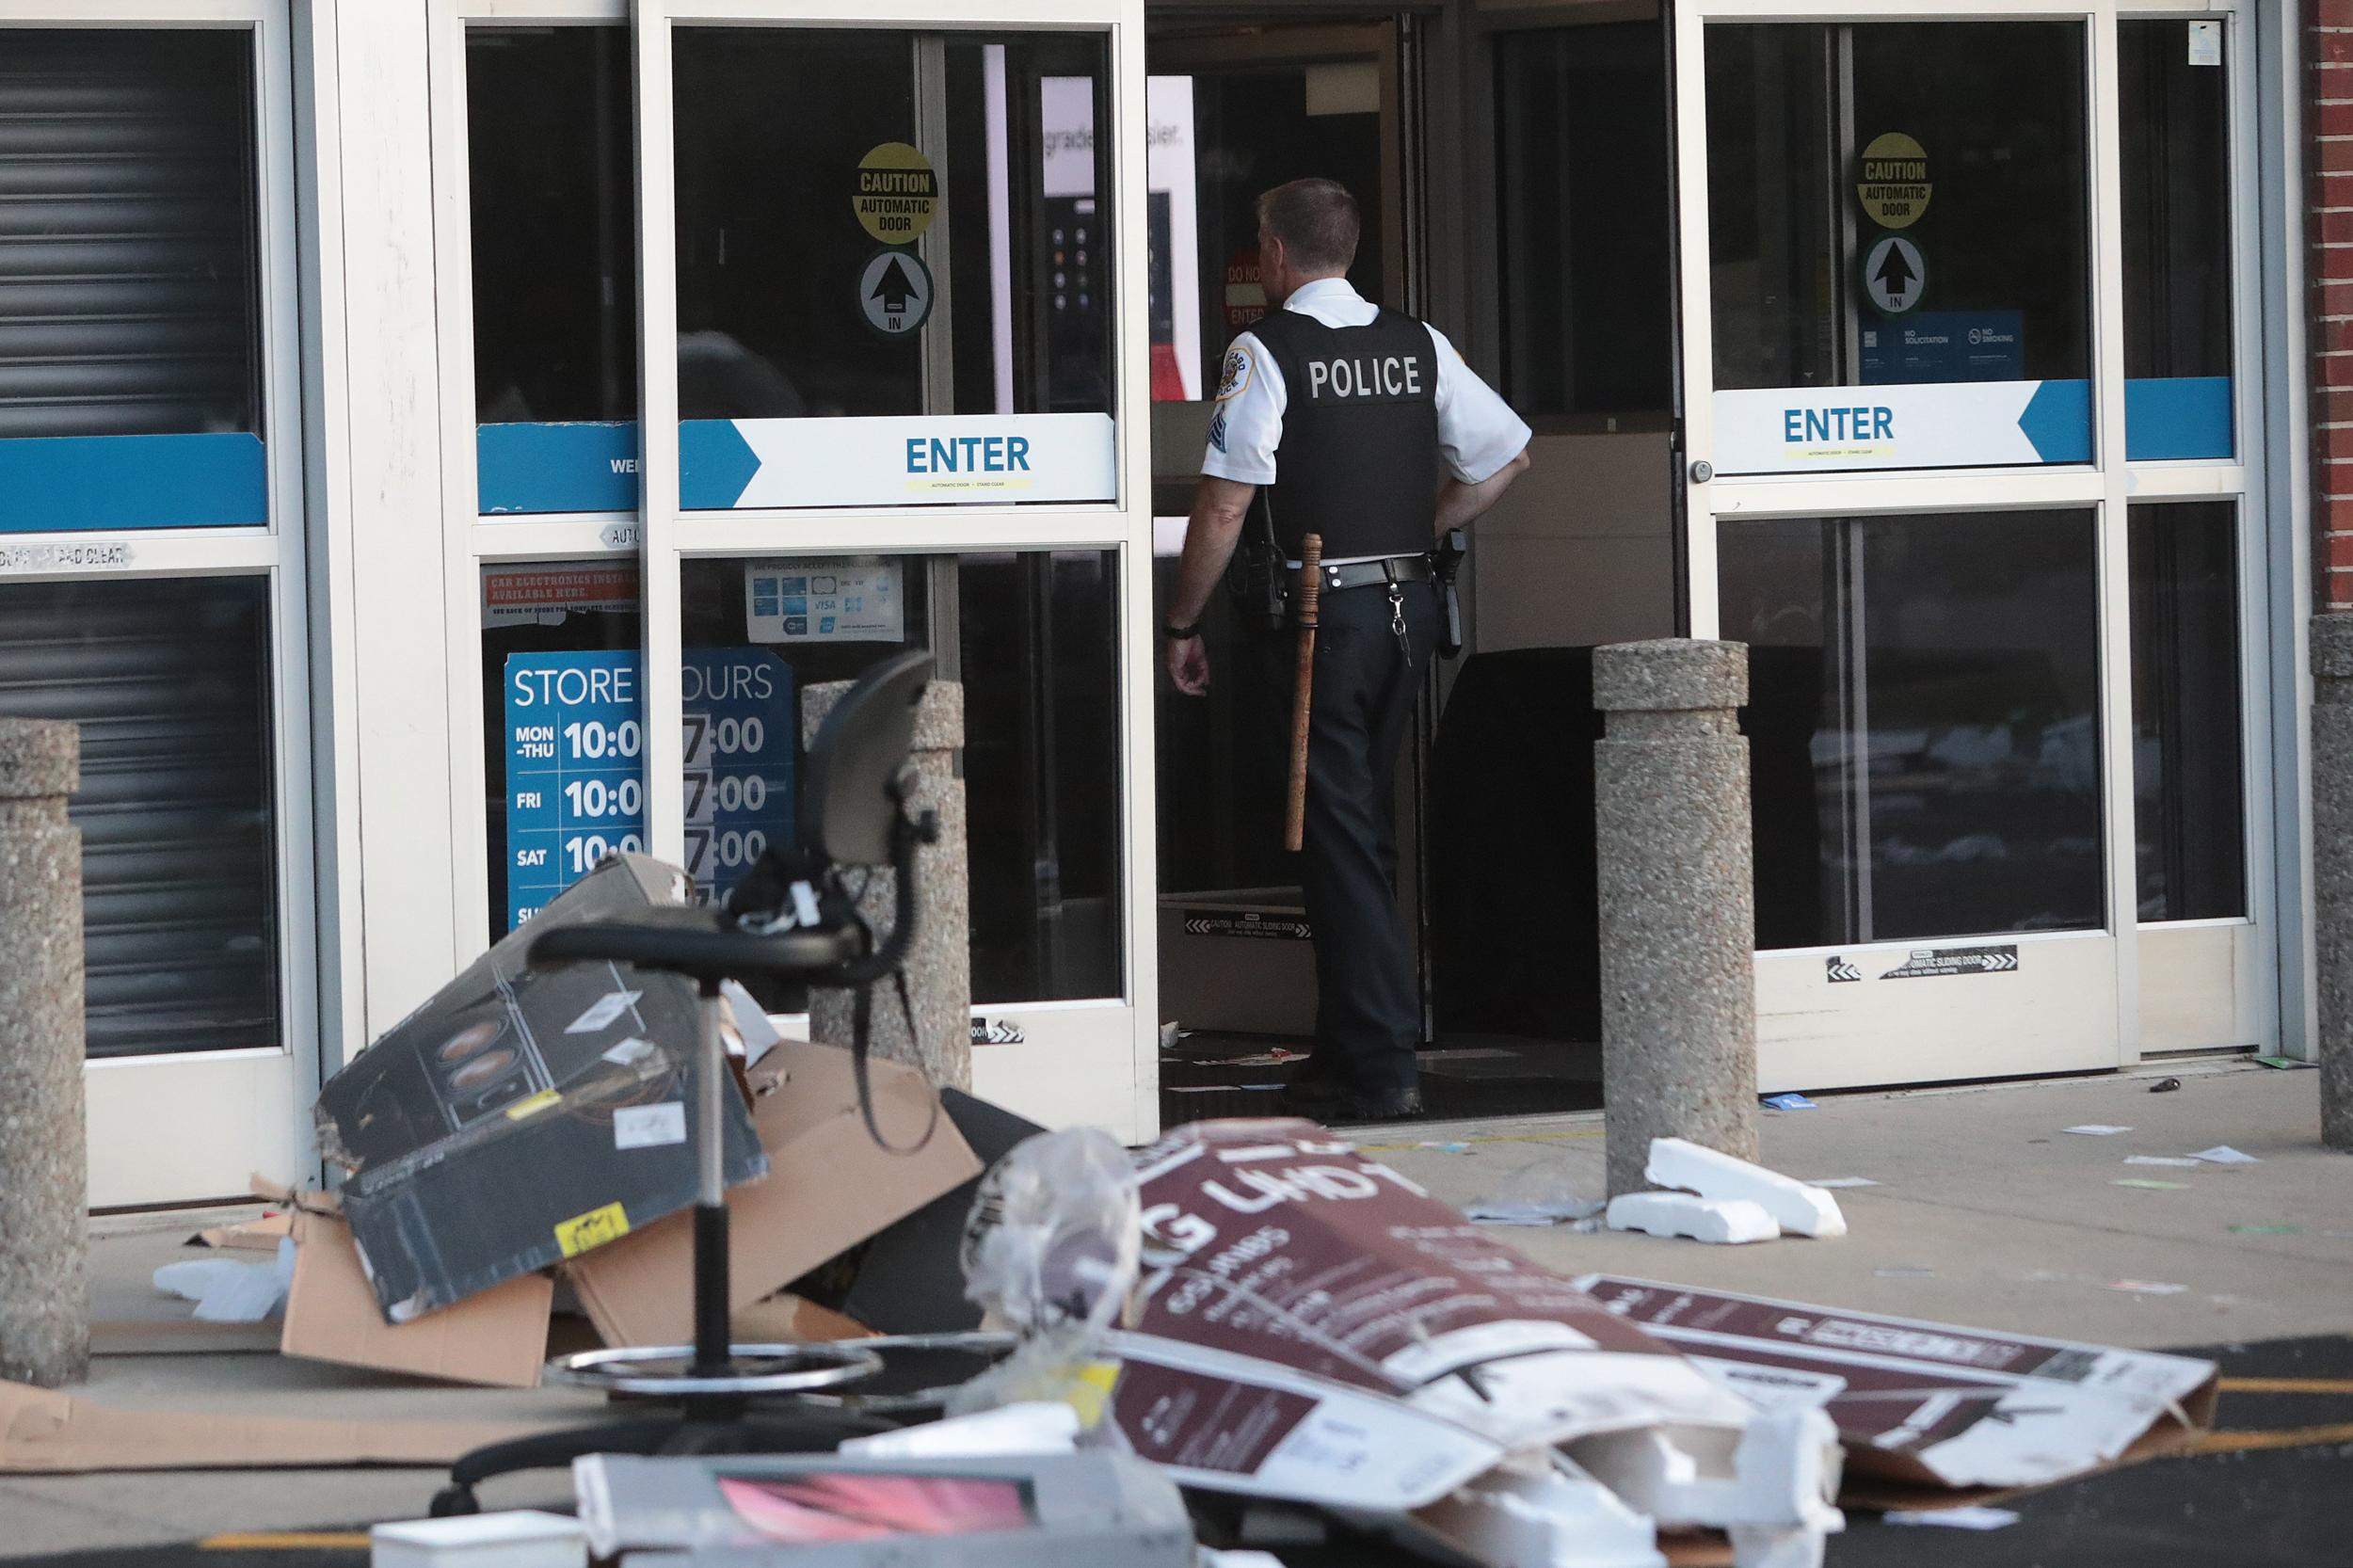 Mass Looting In Chicago, Shots Fired, Over 100 Arrested